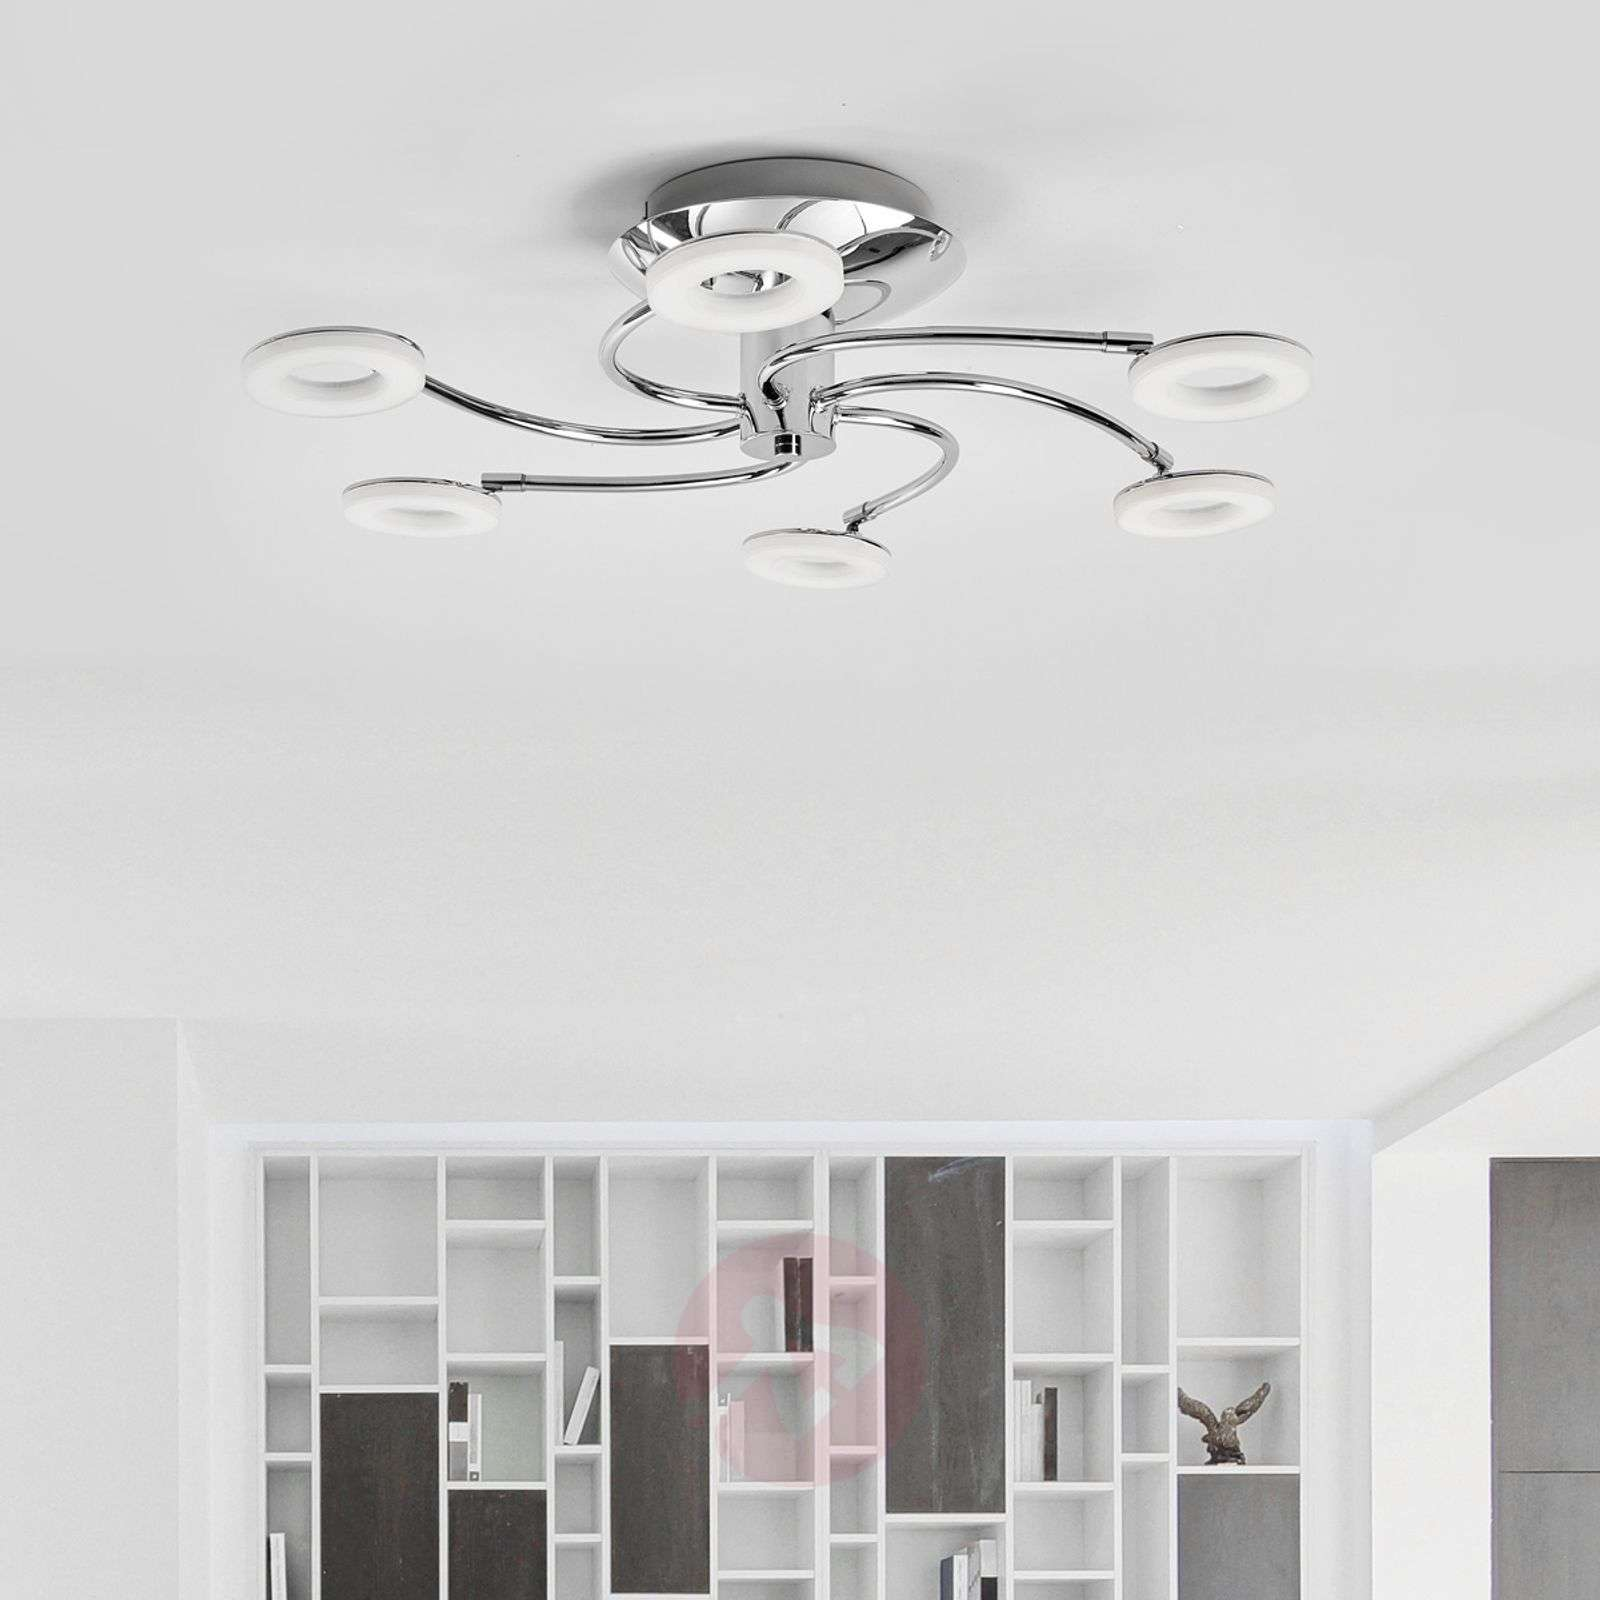 Ilay ceiling lamp with LED lighting-9990017-02